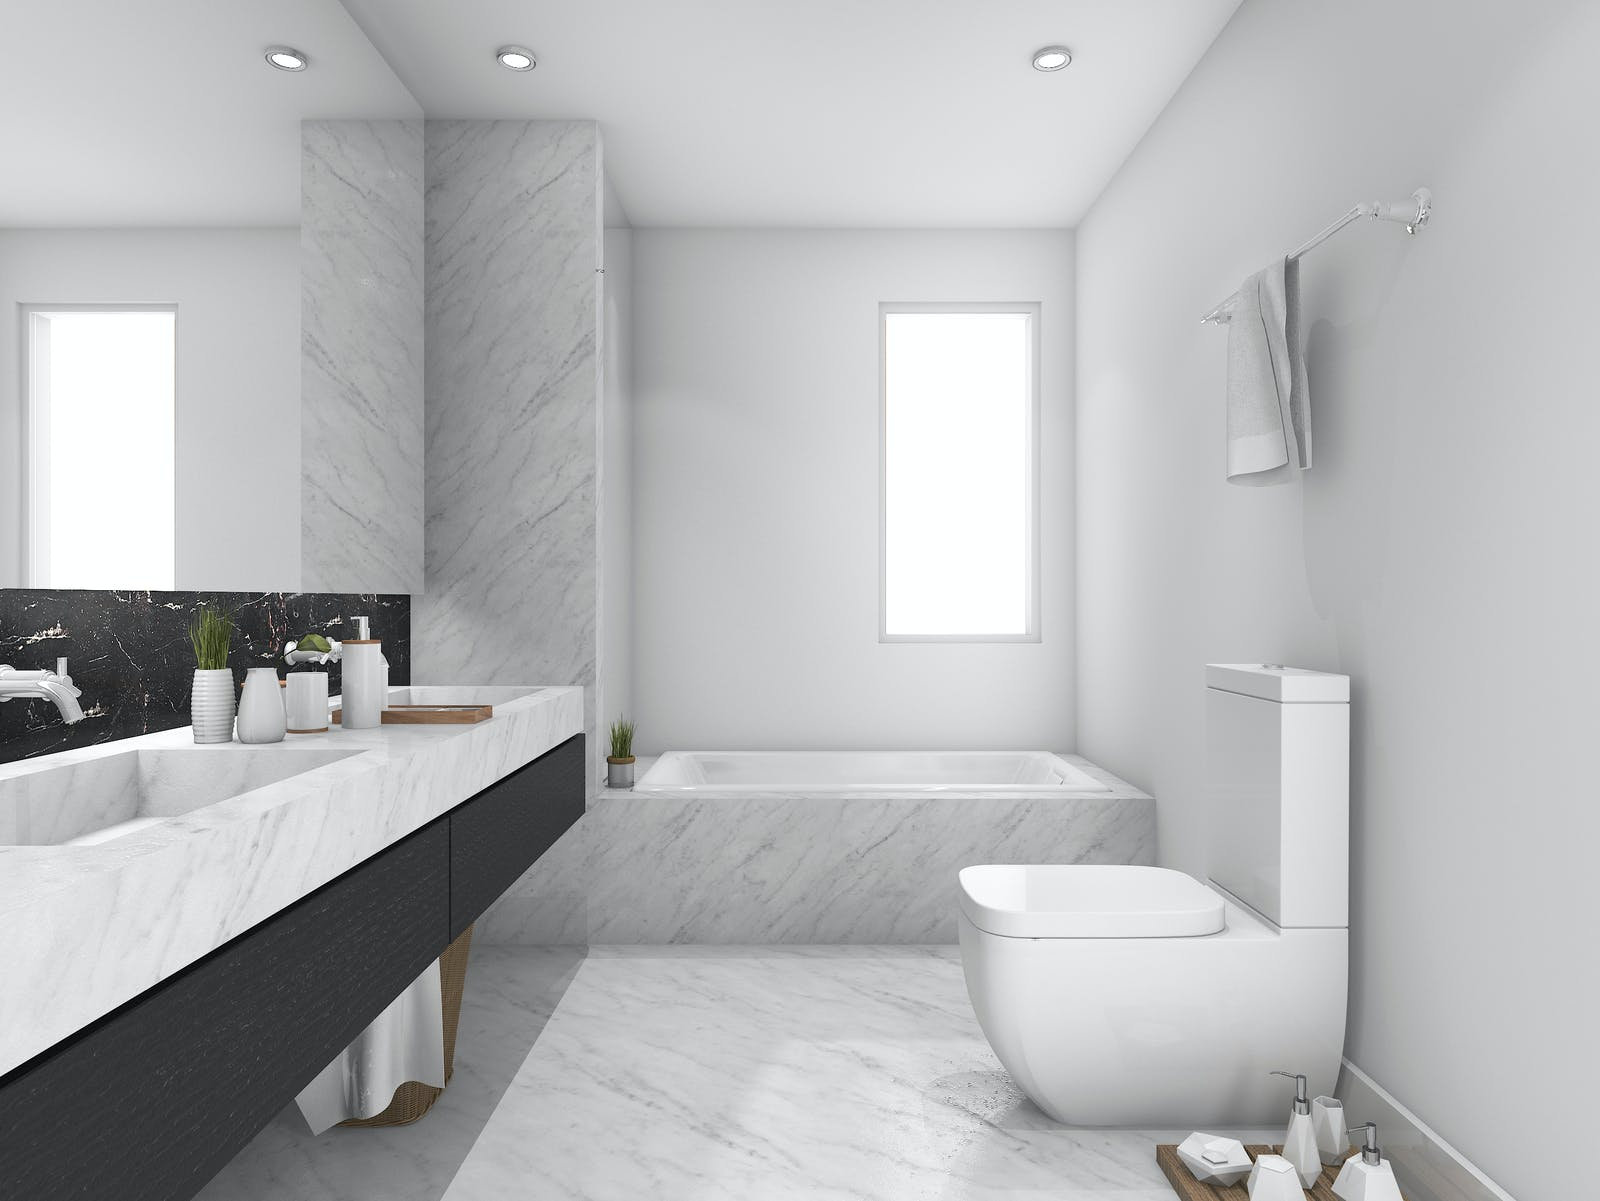 Paint Do You Need For Bathroom Ceilings, What Paint To Use In Bathroom Ceiling